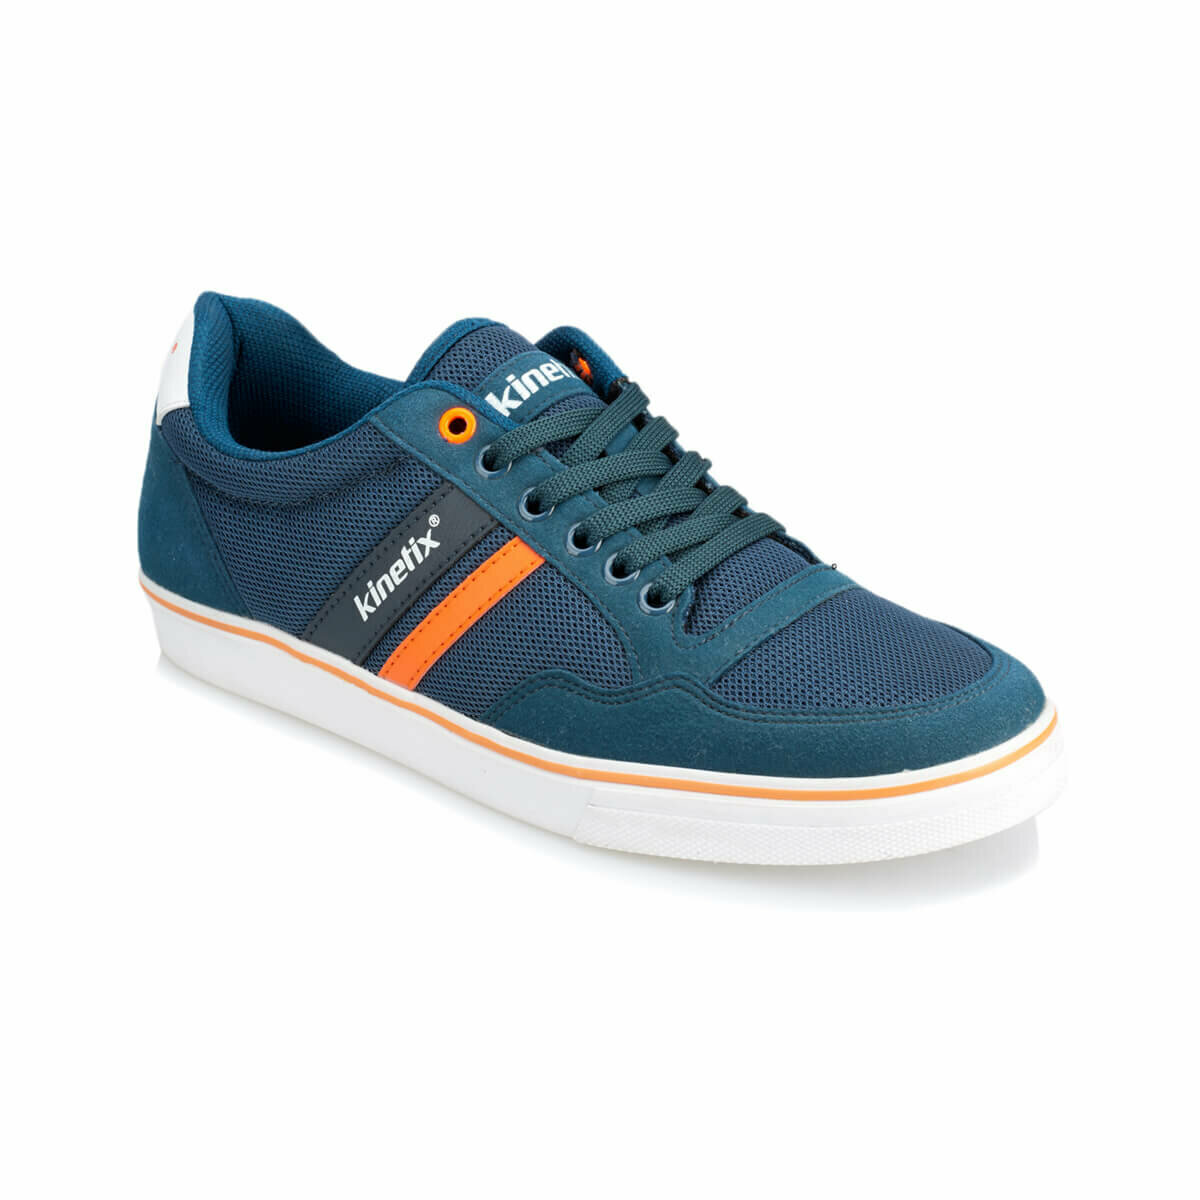 FLO PONTECH M Oil Male Sneaker Shoes KINETIX